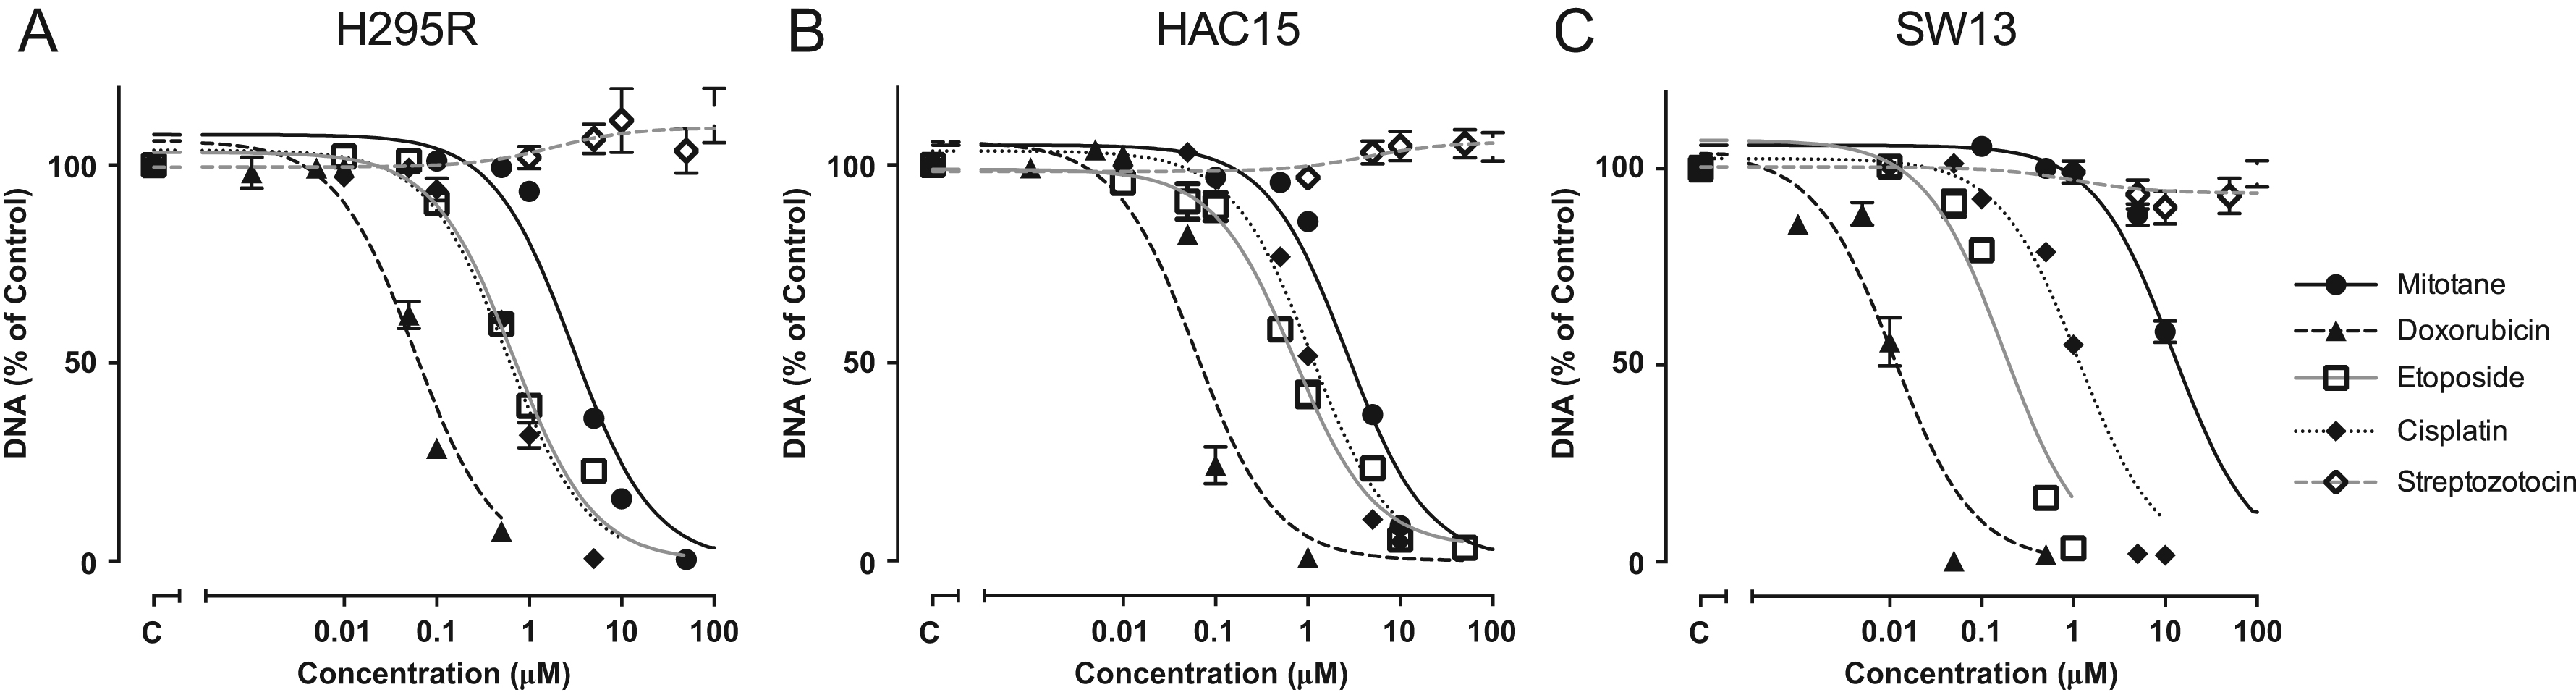 MDR1 inhibition increases sensitivity to doxorubicin and